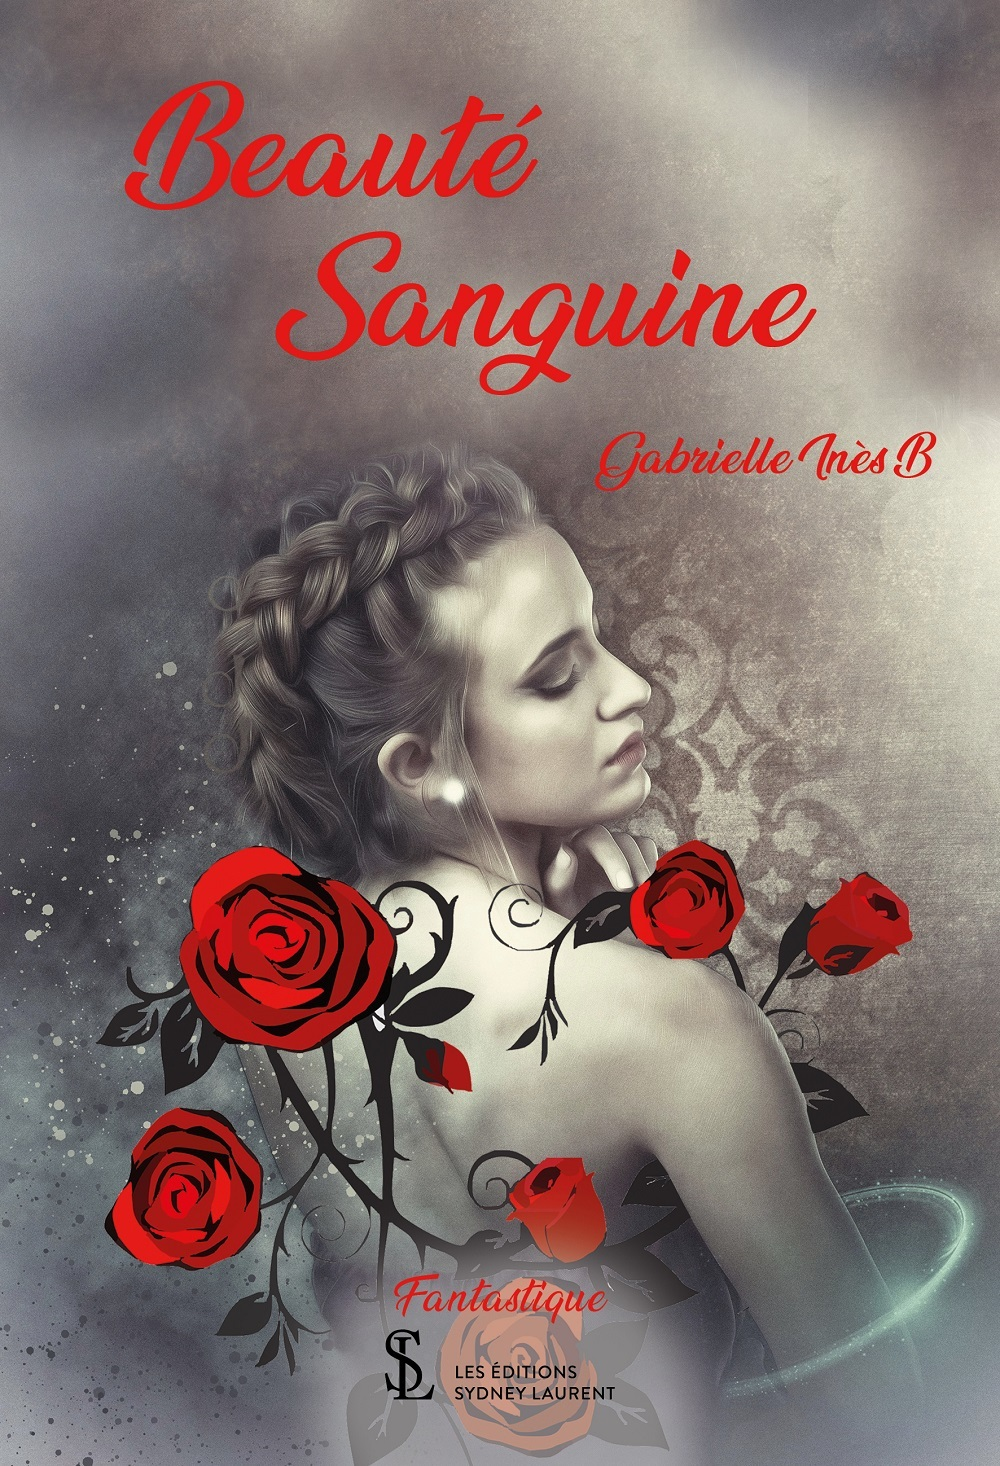 BEAUTE SANGUINE